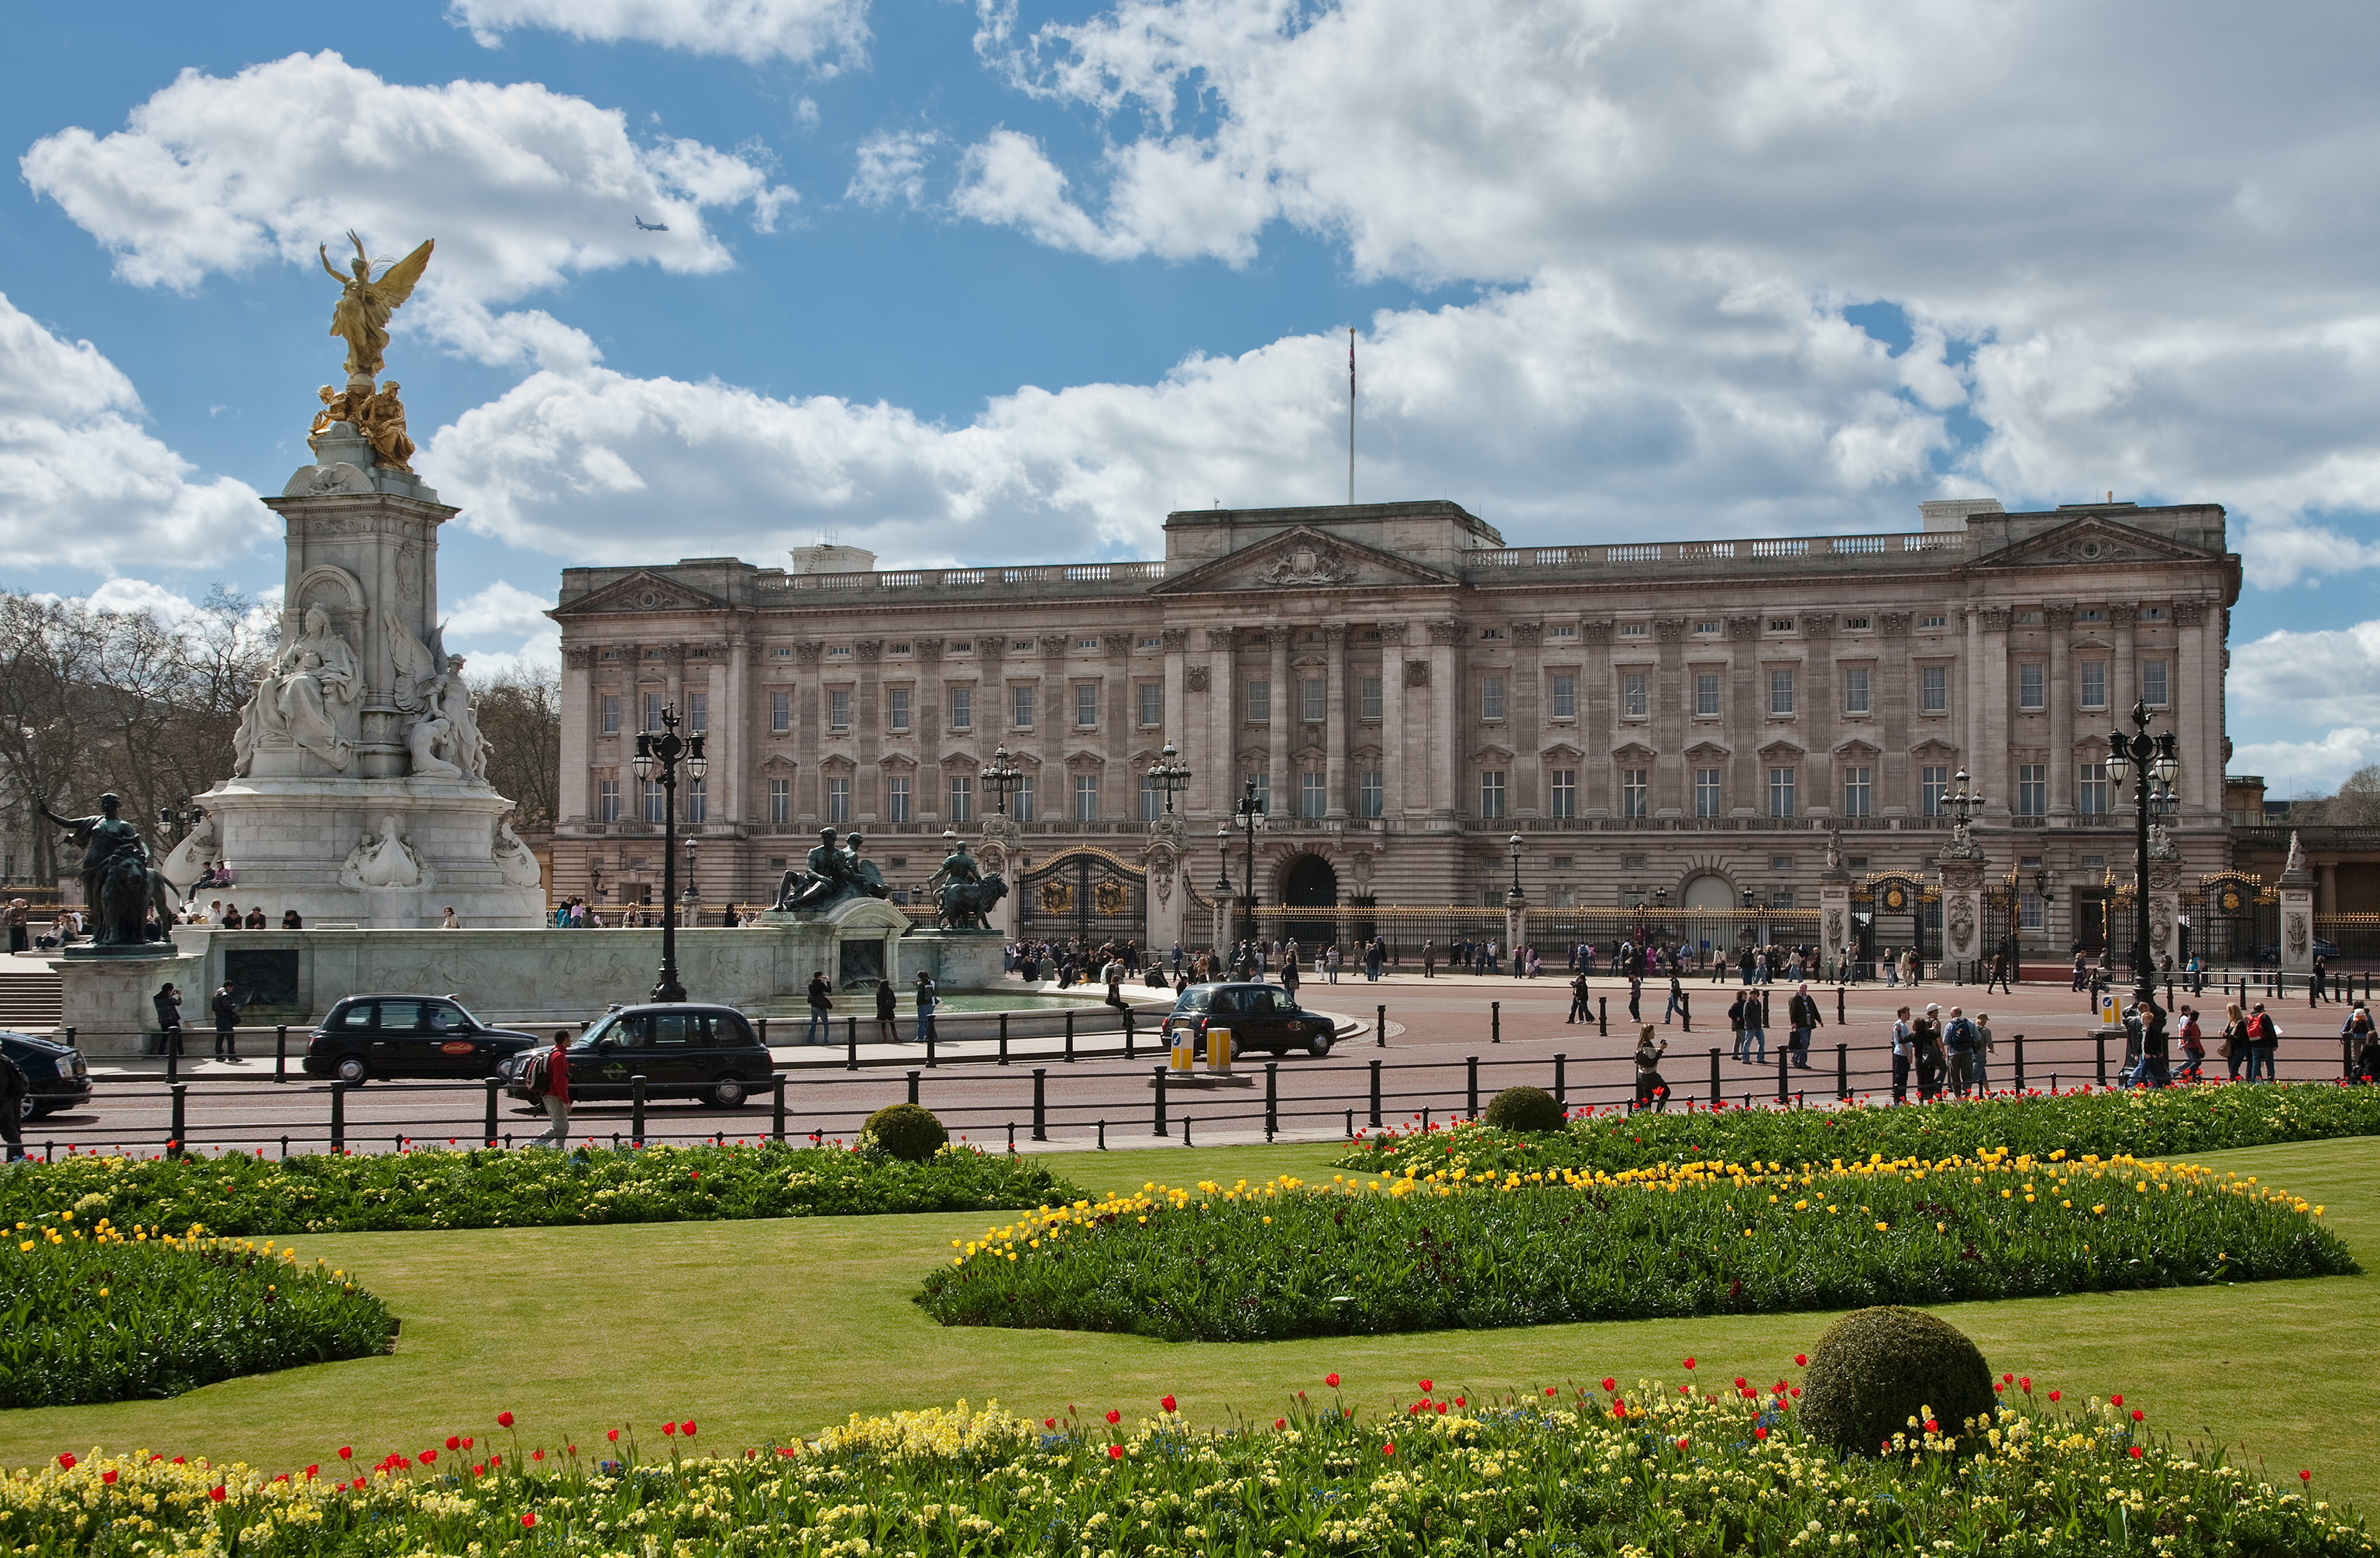 """Buckingham Palace, London - April 2009"" by Diliff - Own work. Licensed under CC BY-SA 3.0 via Wikimedia Commons."